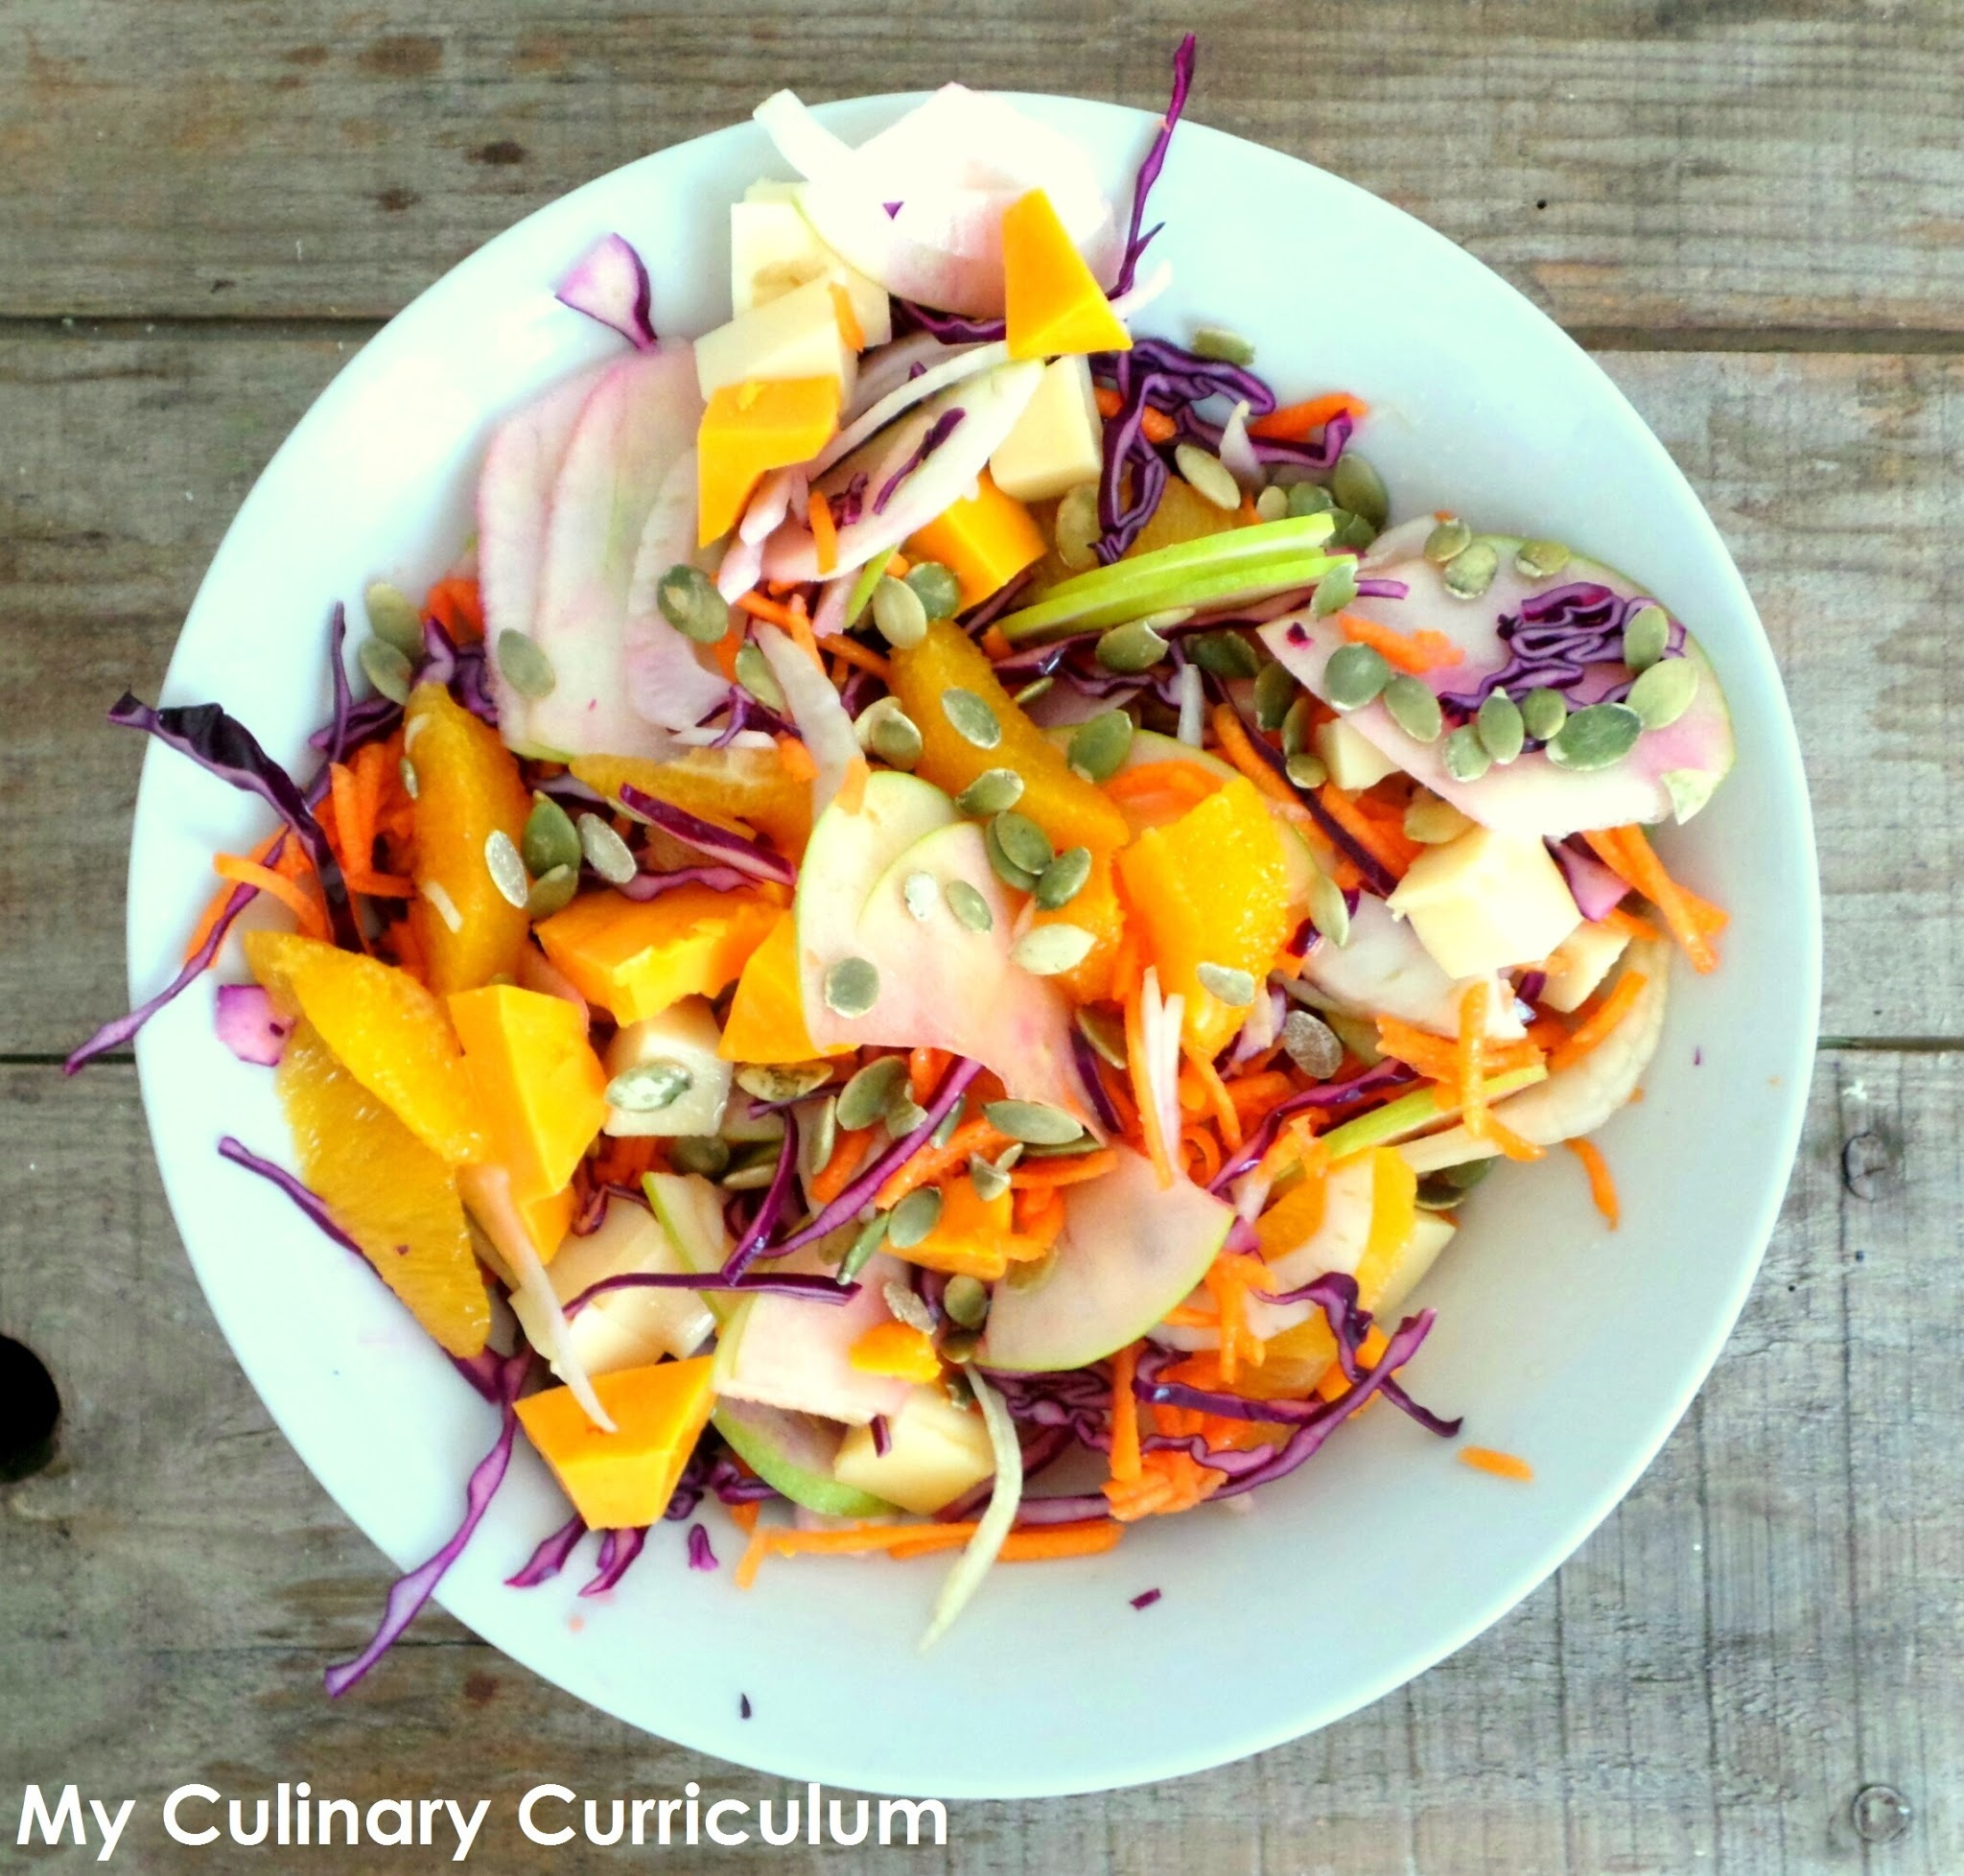 Salade d'hiver ultra gourmande au chou rouge, fenouil et puis plein d'autres choses encore (Winter salad with red cabbage, fennel and  many other things)